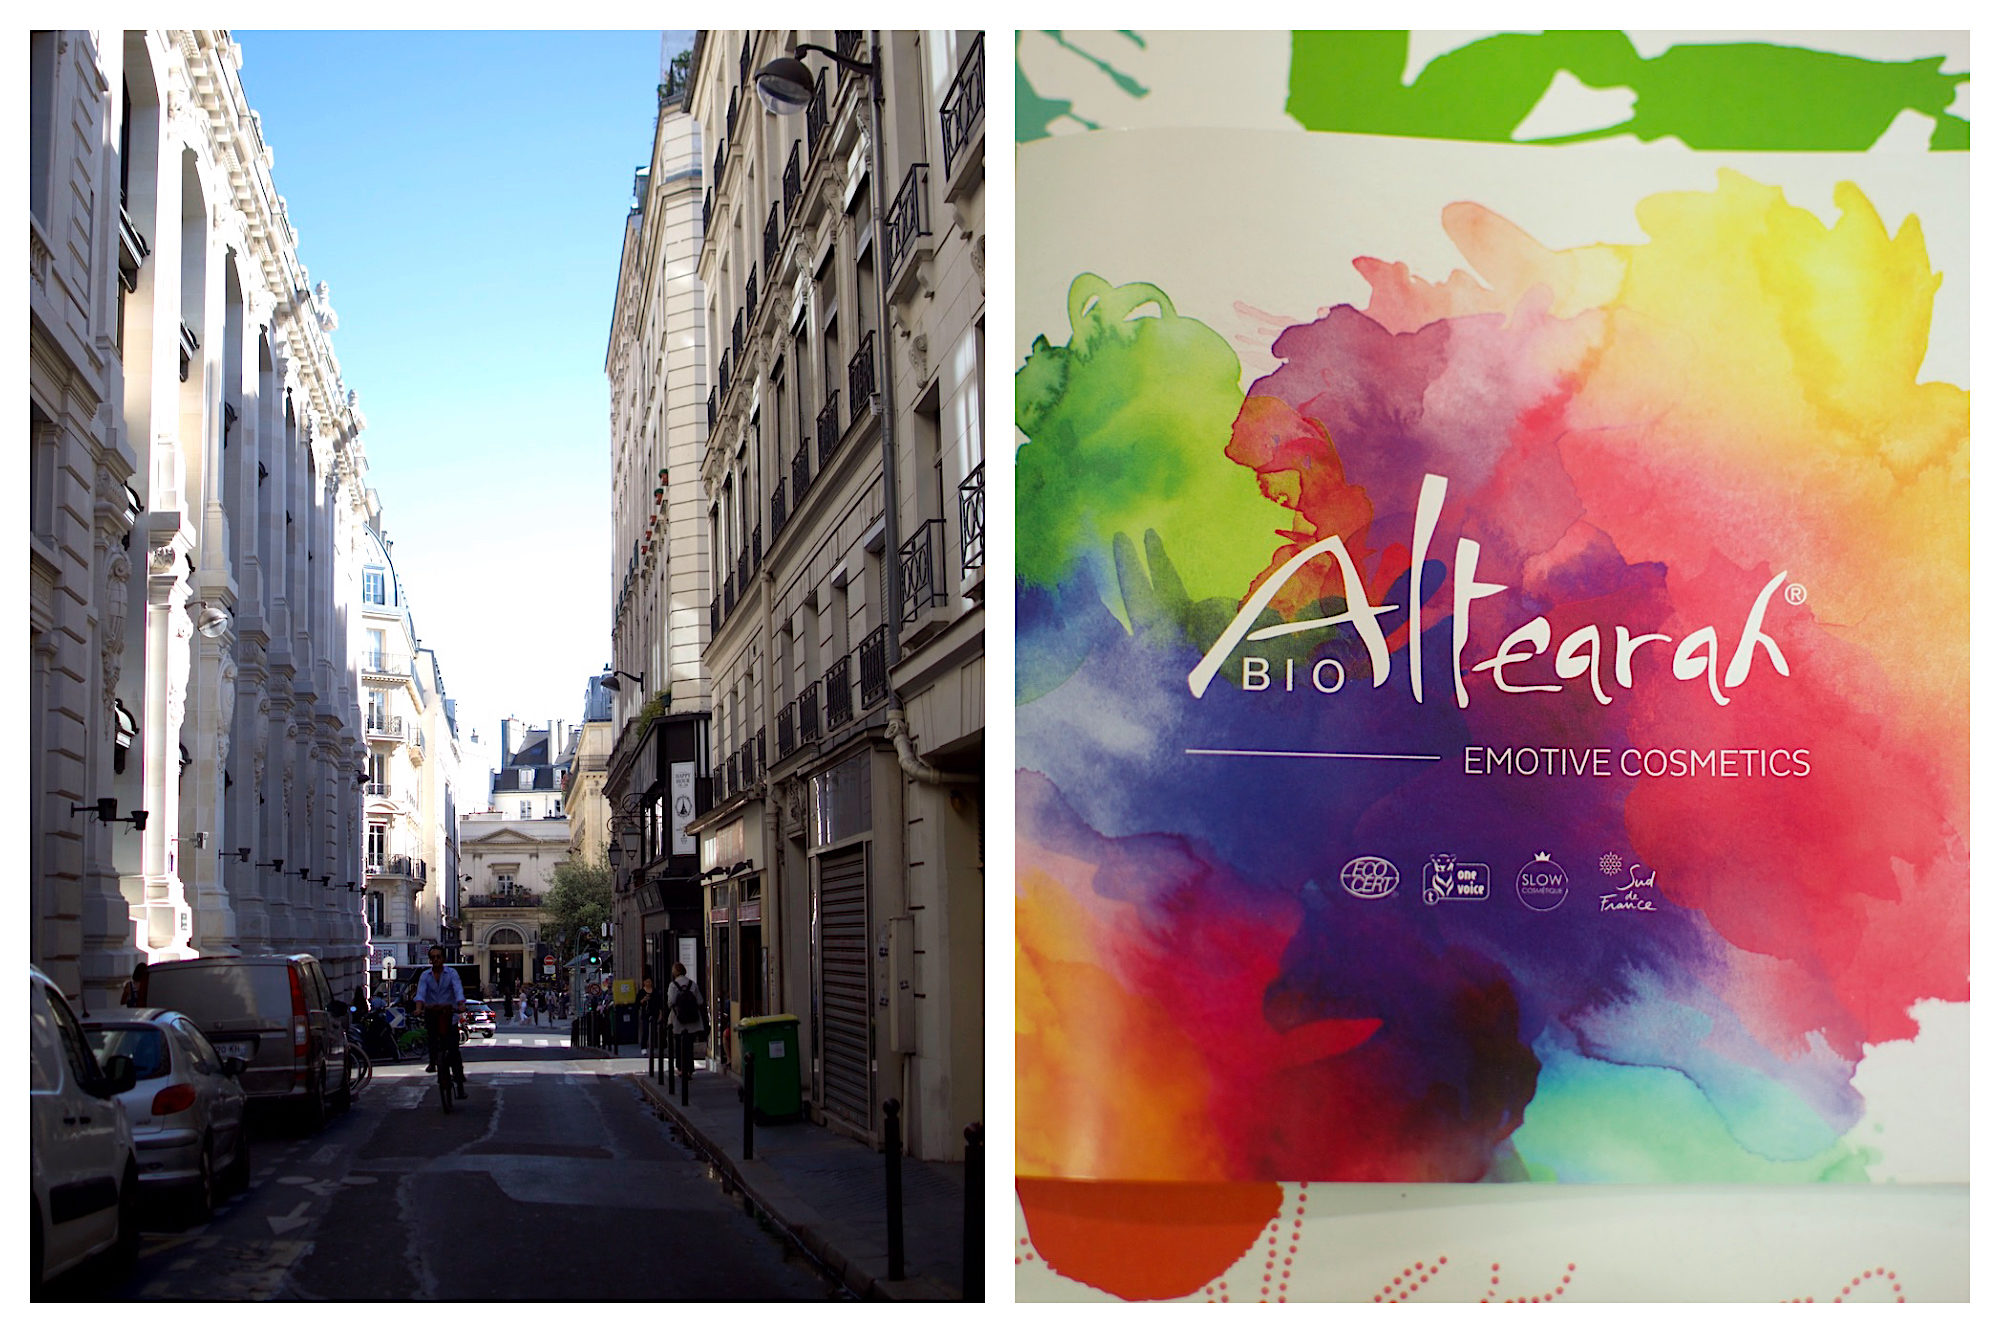 A view of a Paris street (left). The colorful label of Altearah Bio perfume (right).